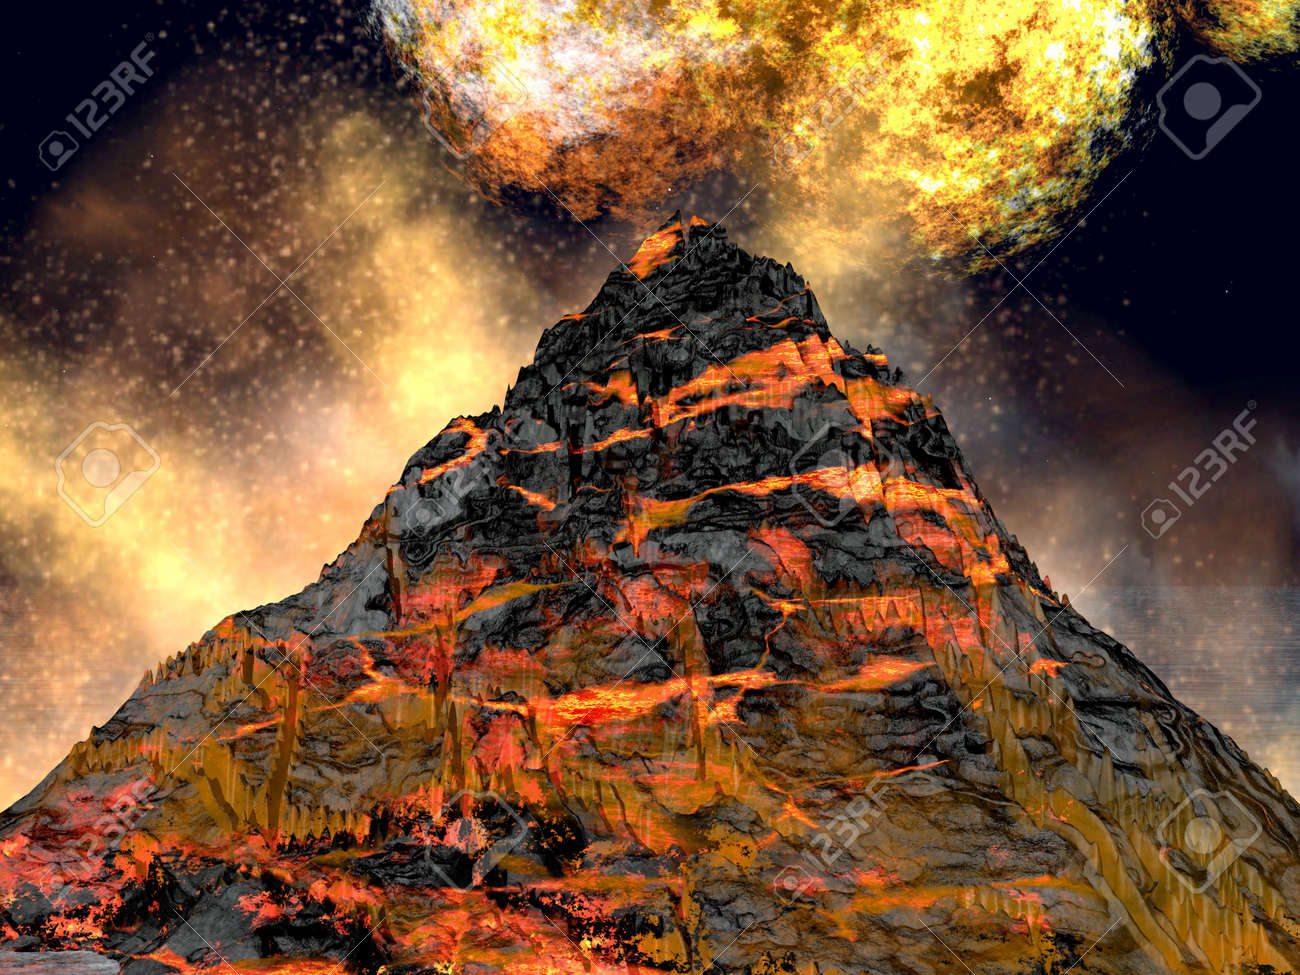 Young volcano being born Stock Photo - 6833249